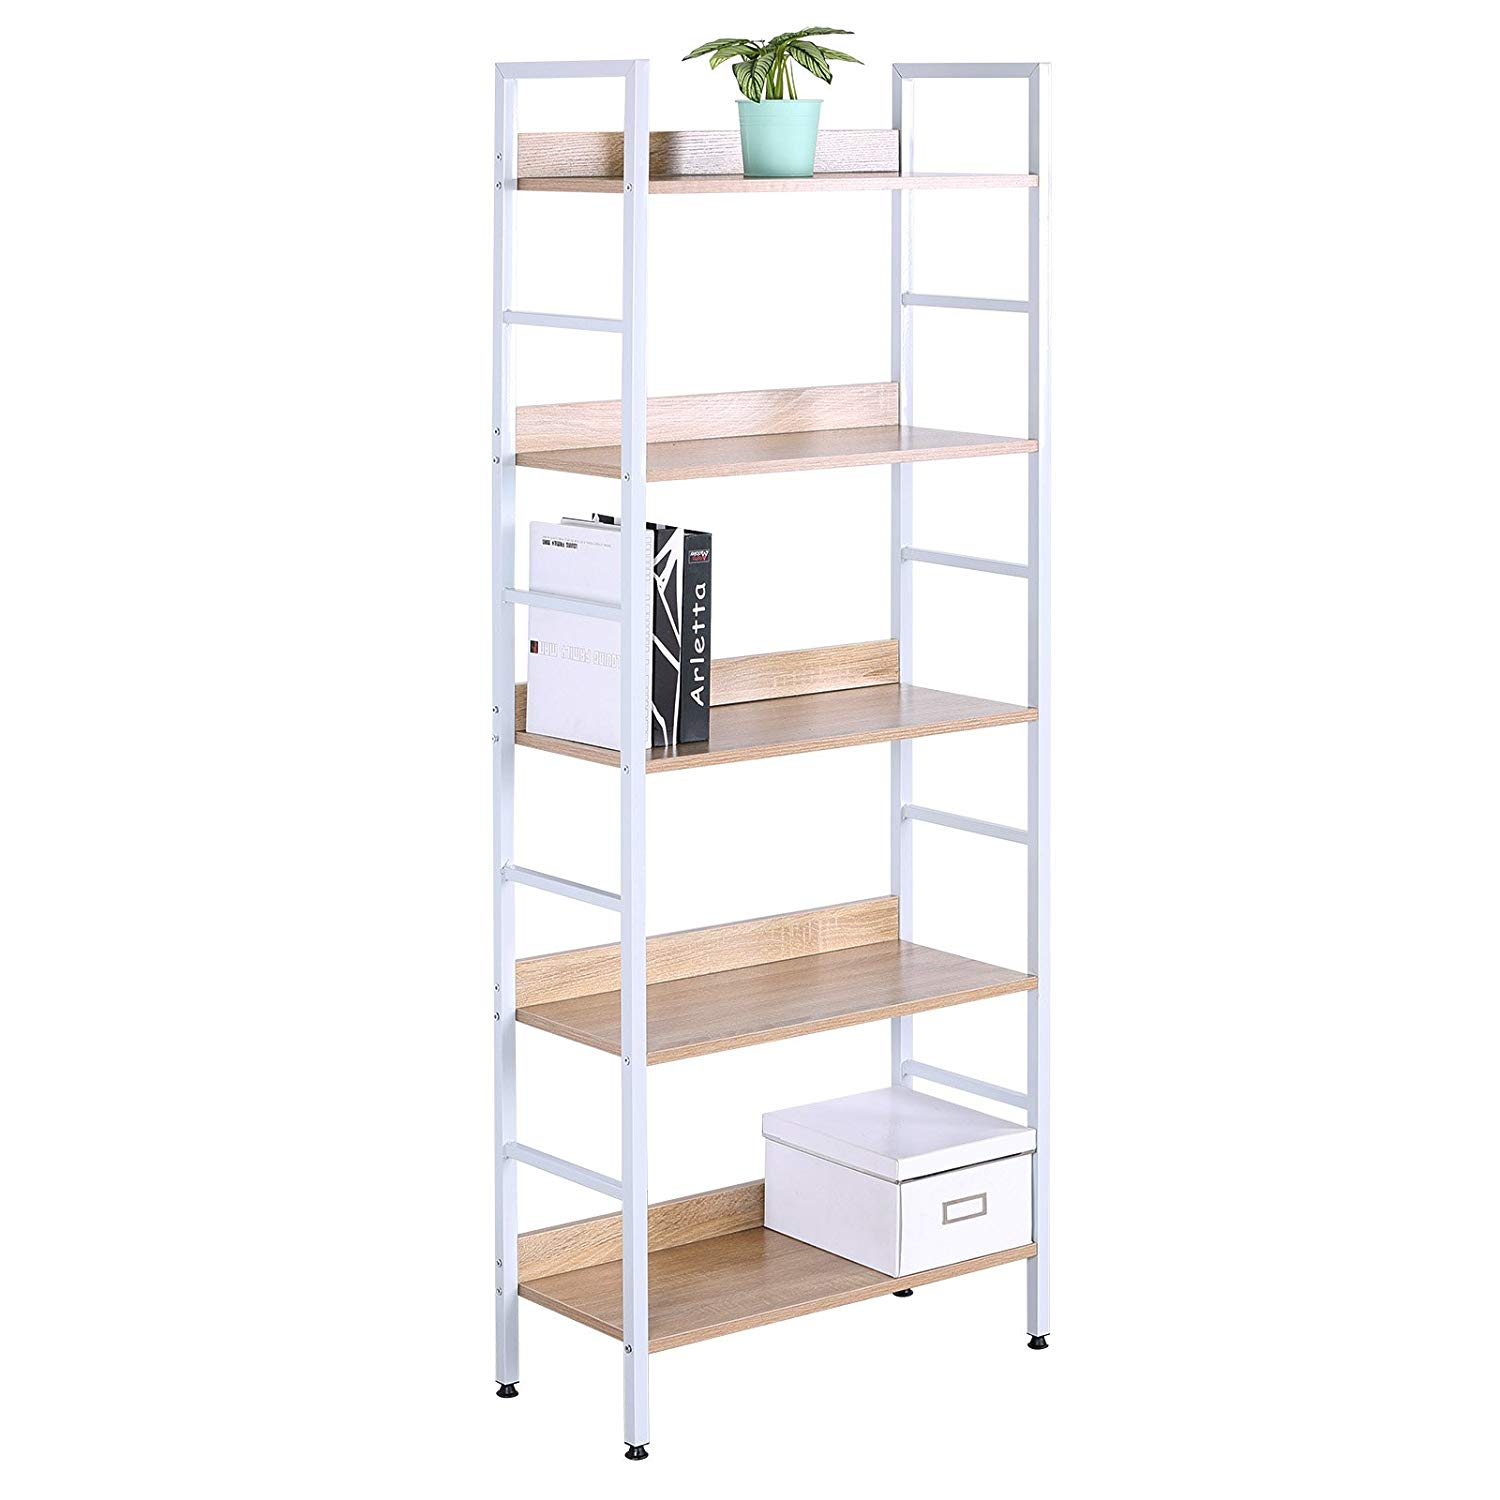 Cheap File Shelves Library Bookshelf Find File Shelves